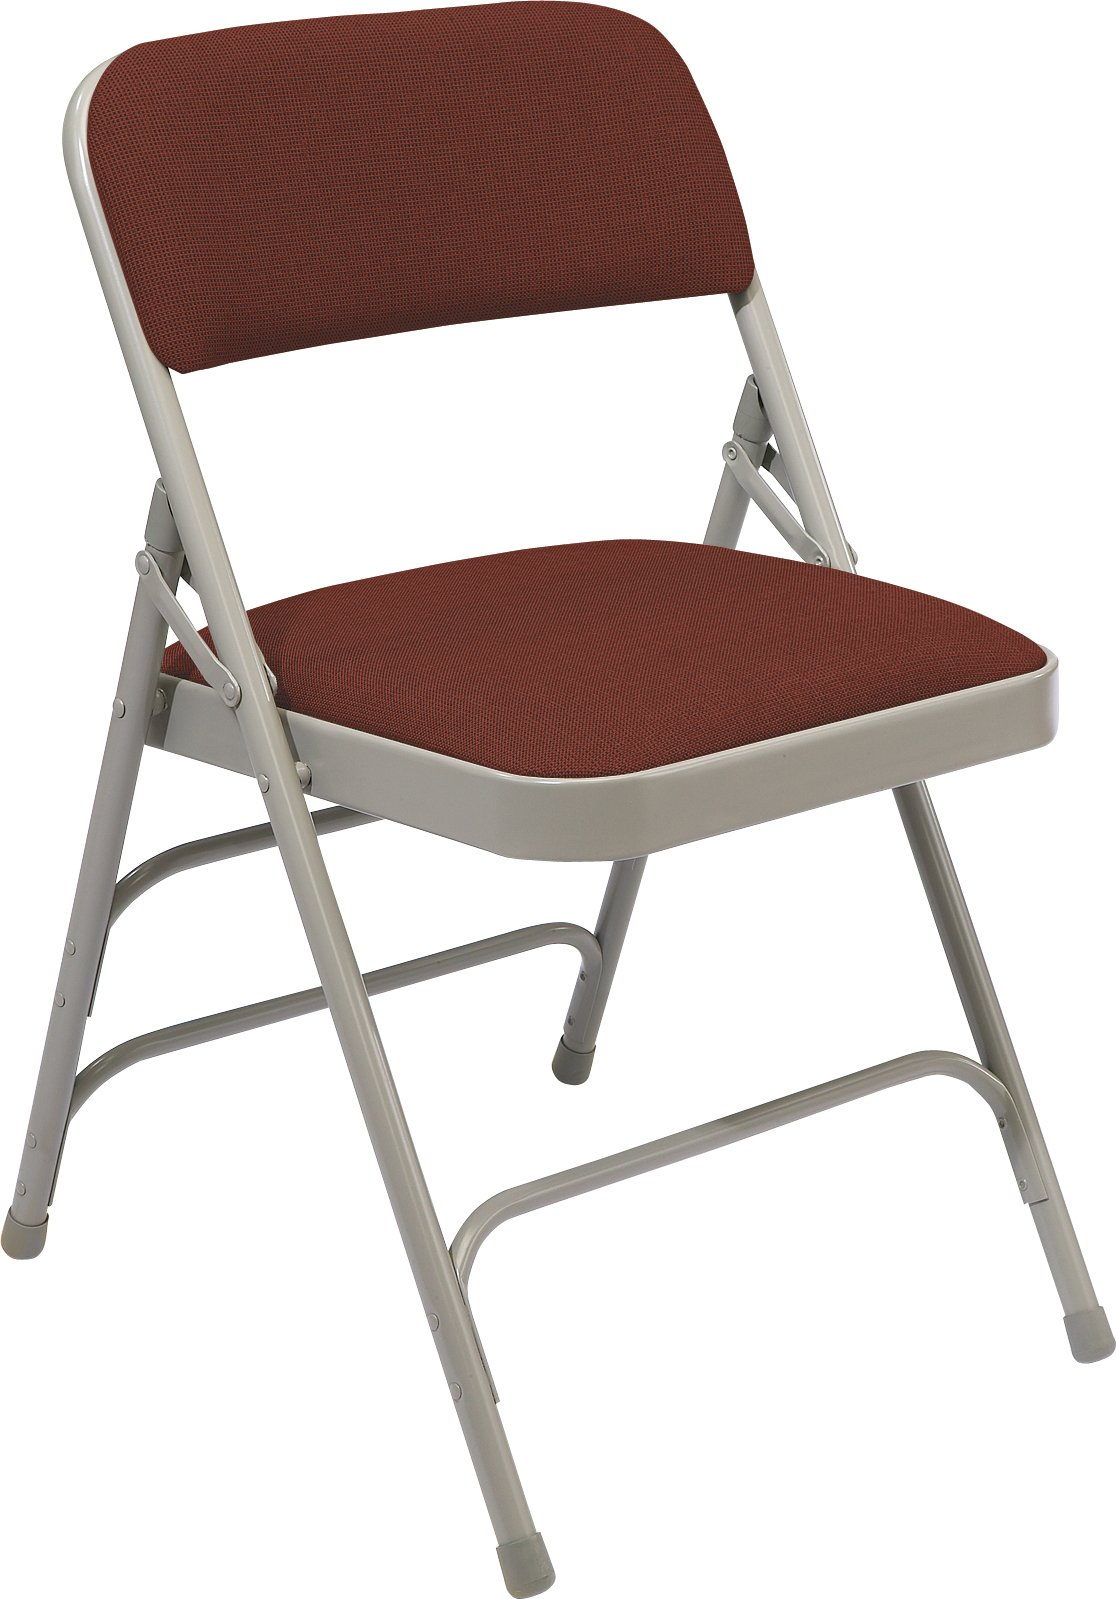 National Public Seating 2300 Series Steel Frame Upholstered Premium Fabric Seat and Back Folding Chair with Triple Brace, 480 lbs Capacity, Majestic Cabernet/Gray (Carton of 4)